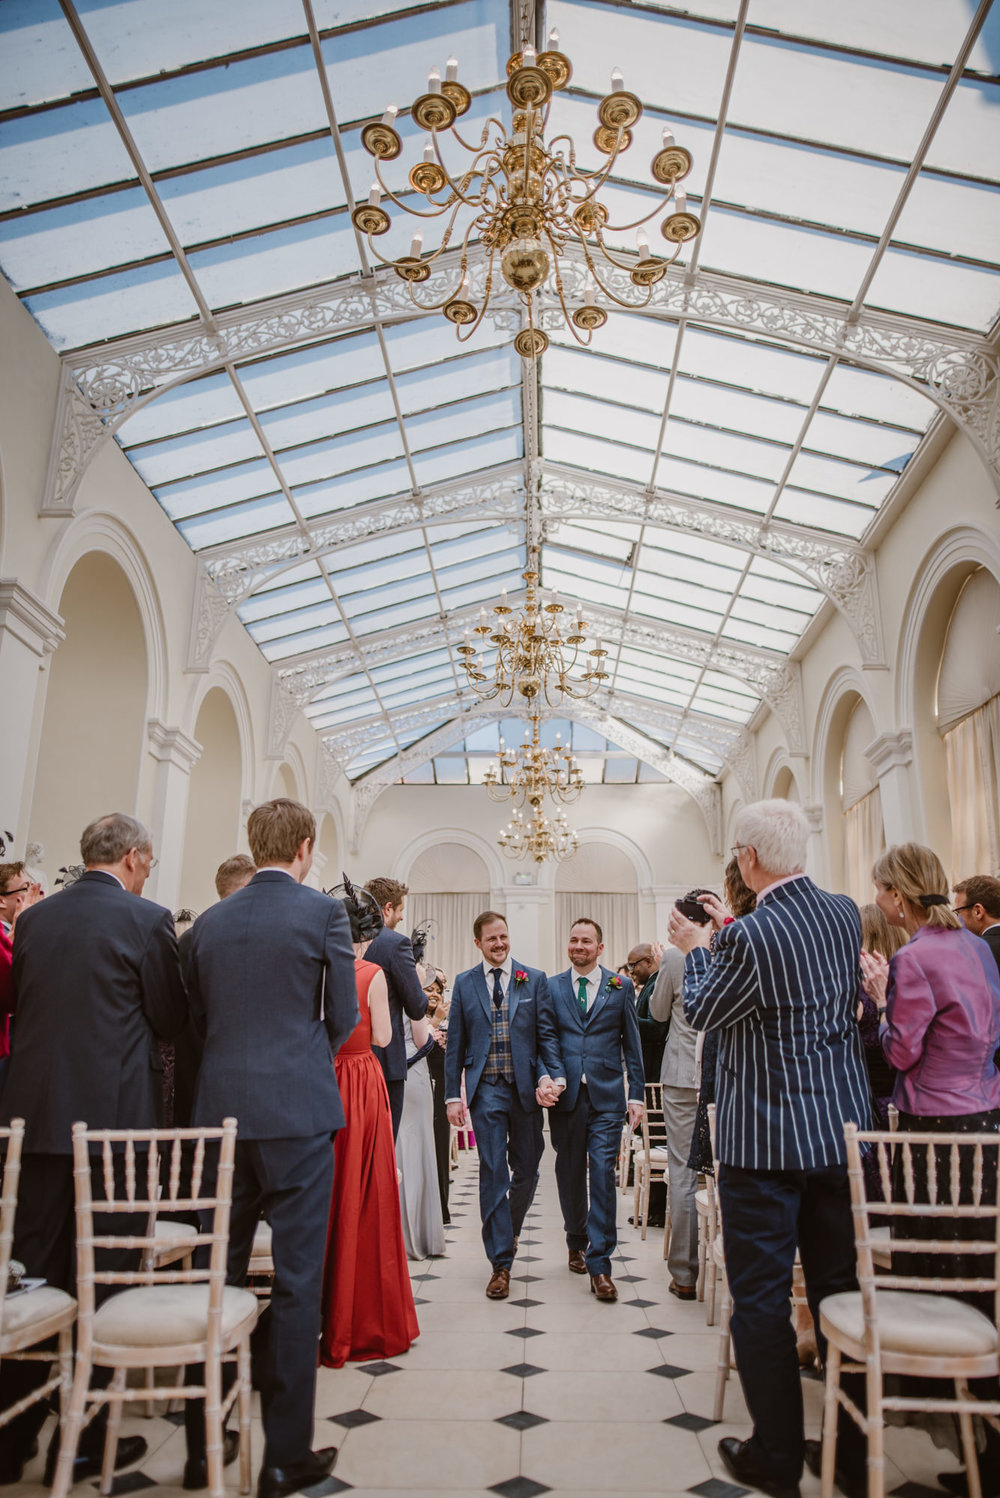 The Orangery Wedding Ceremony Blenheim Palace